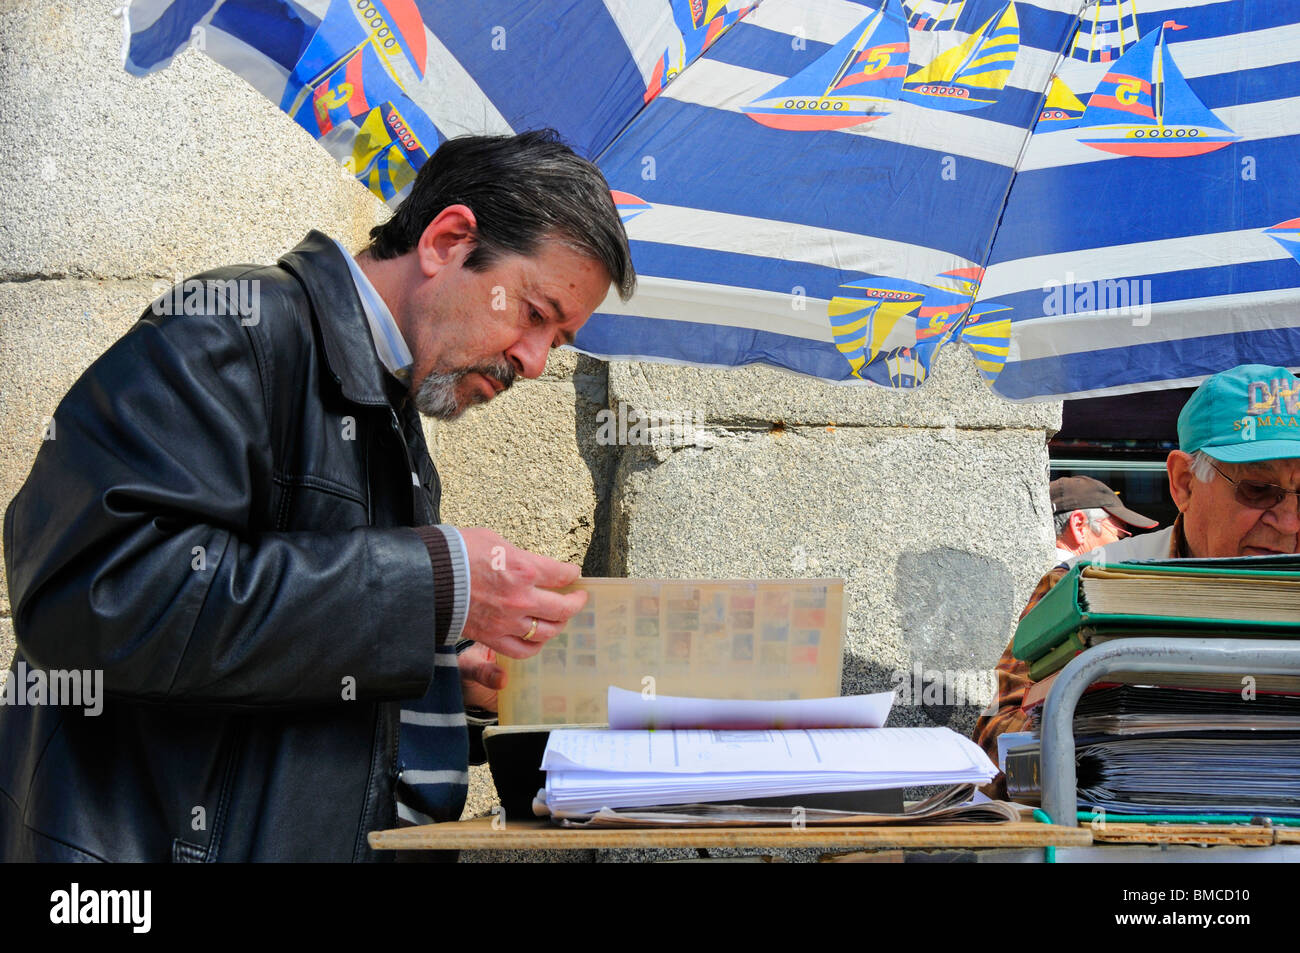 Madrid, Spain. Plaza Mayor. Customer and stallholder at weekly Sunday stamp market - Stock Image